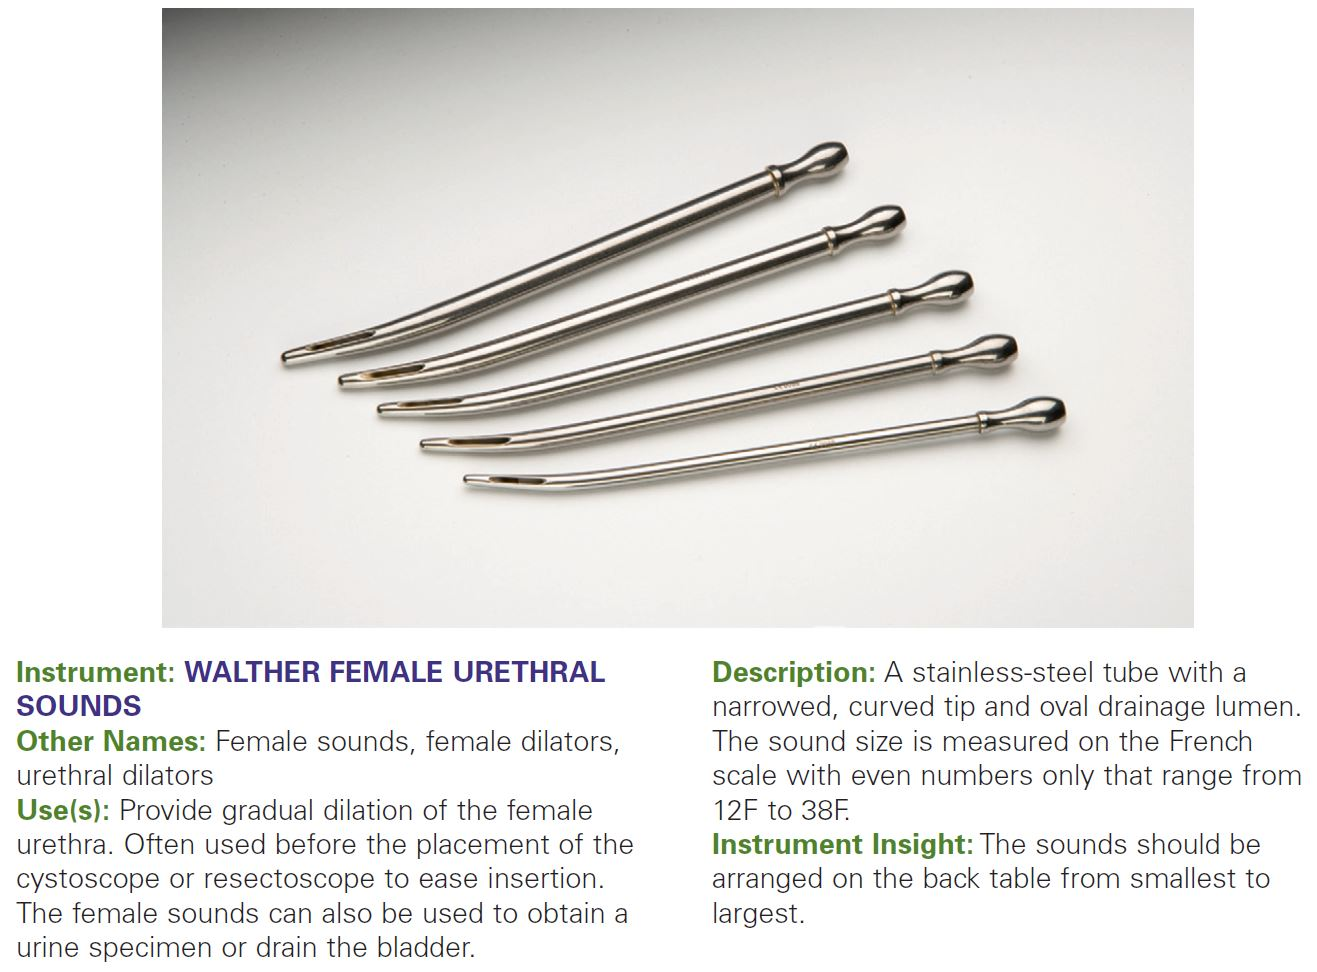 WALTHER FEMALE URETHRAL SOUNDS